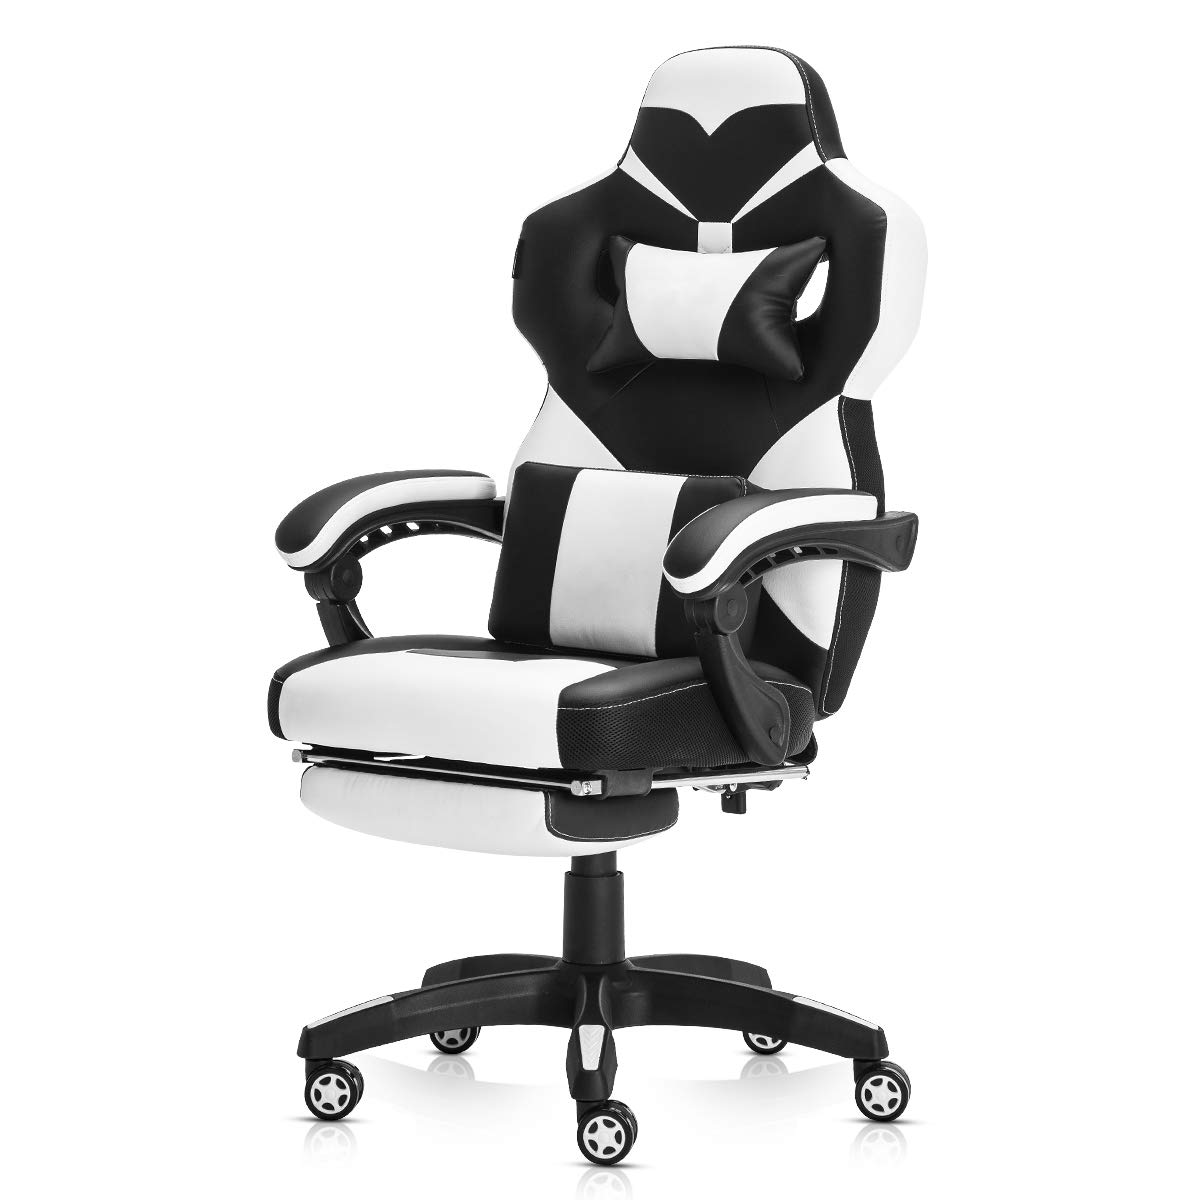 Racing Style PU Leather Gaming Chair - Ergonomic Swivel Computer, Office or Gaming Chair Desk Chair HOT (WH0) by Seatingplus